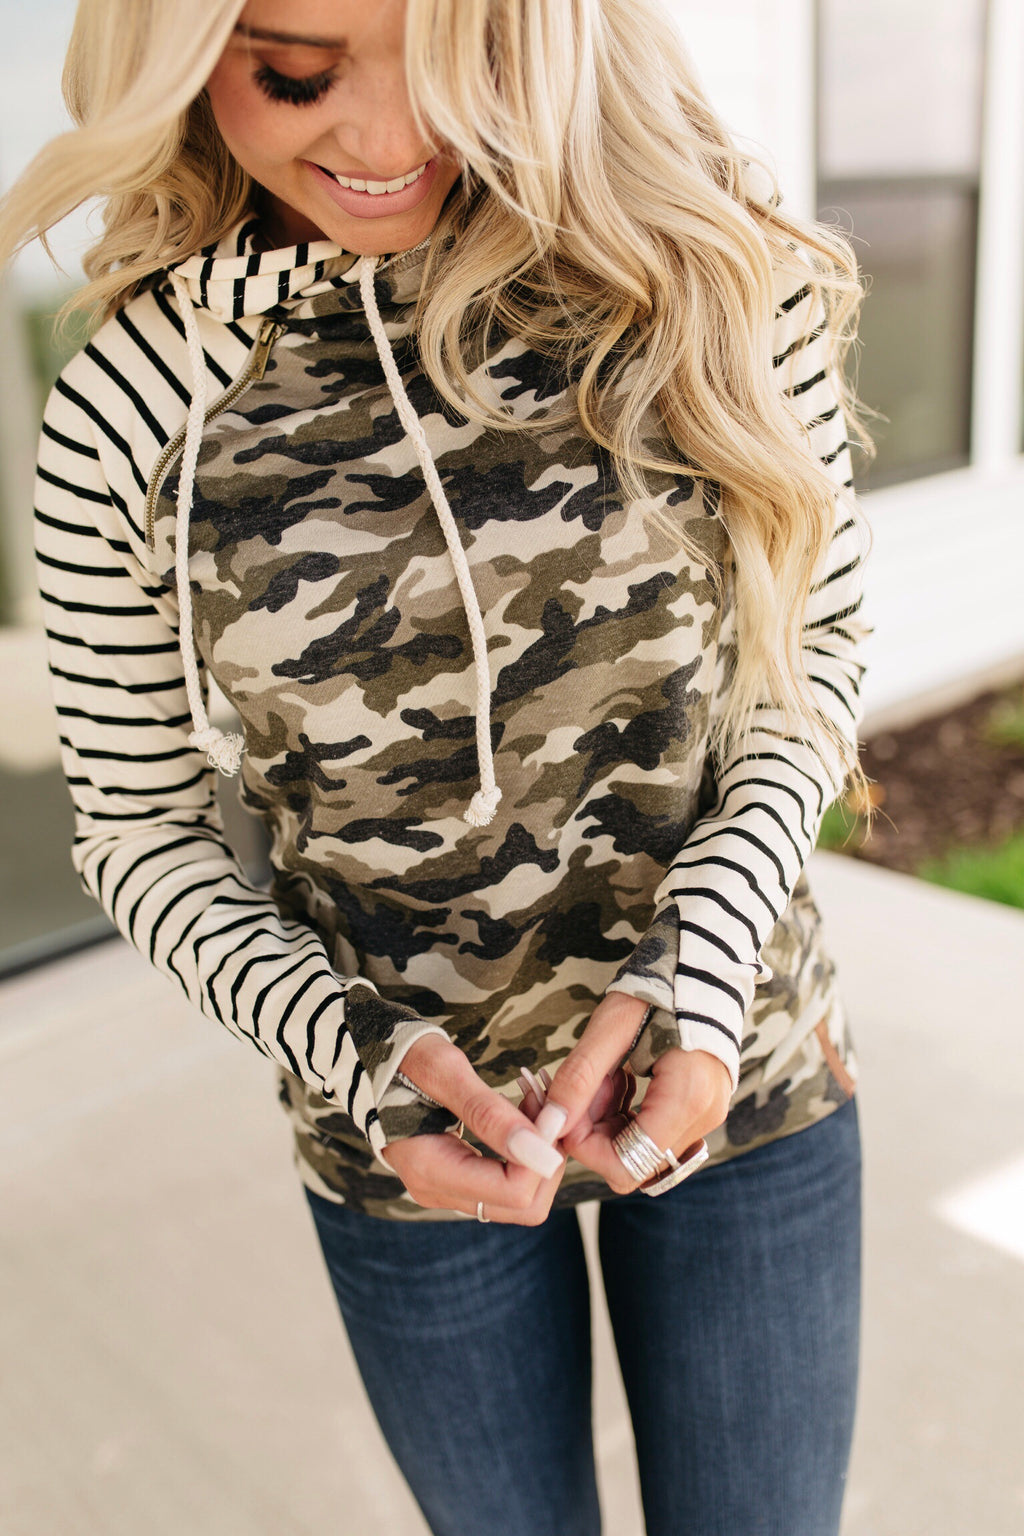 *Exclusive Baseball DoubleHood™ Sweatshirt - Camo & Stripe